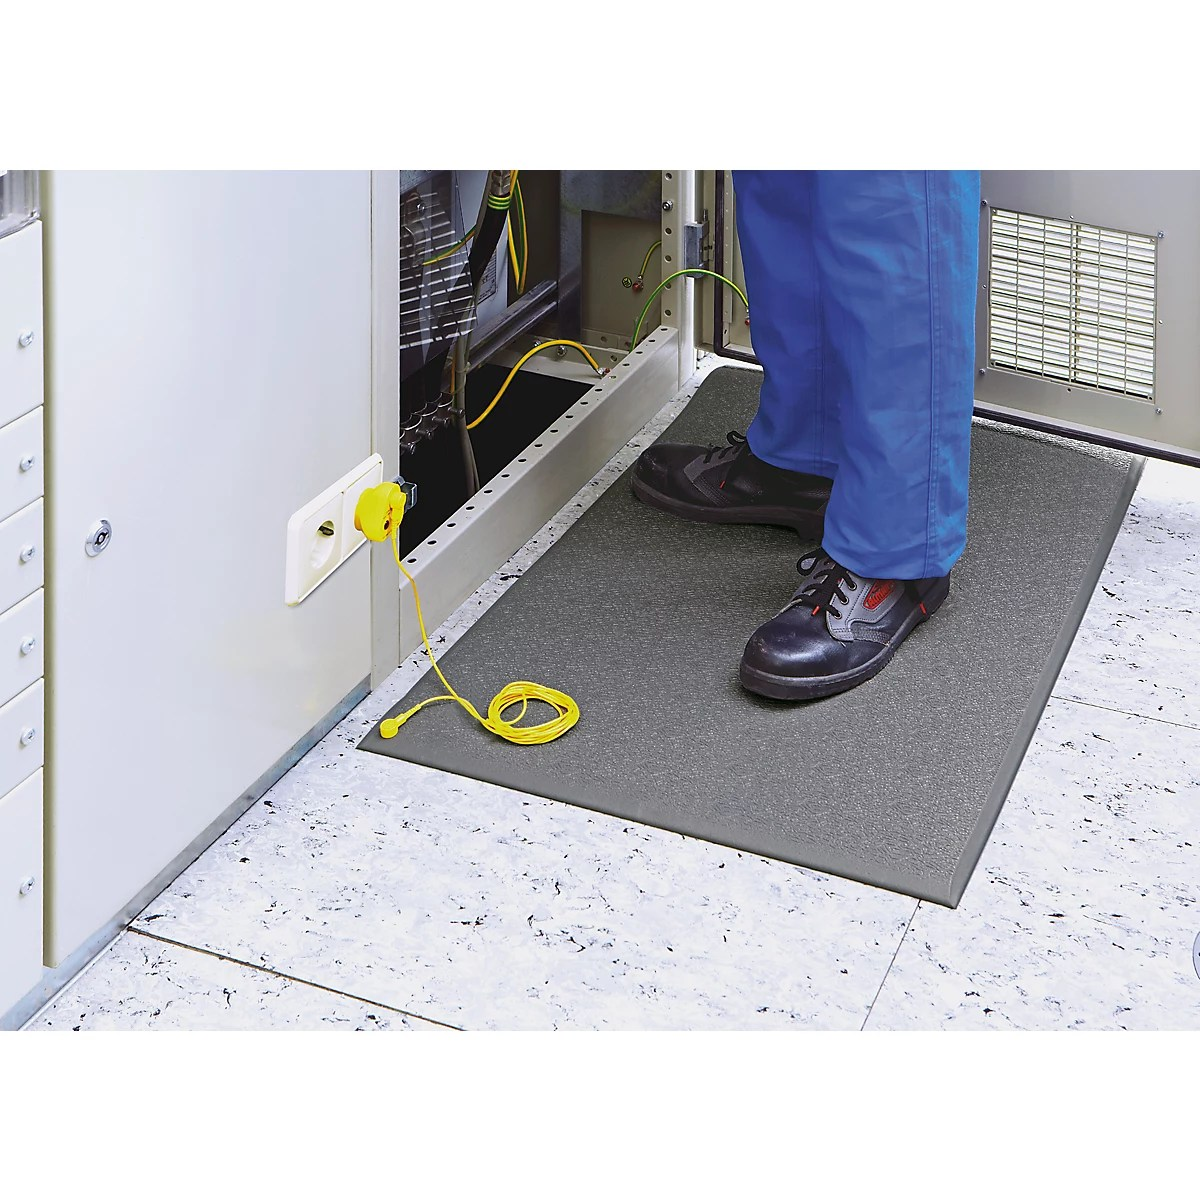 tapis anti fatigue conducteur cobastat avec cable de mise a la terre section